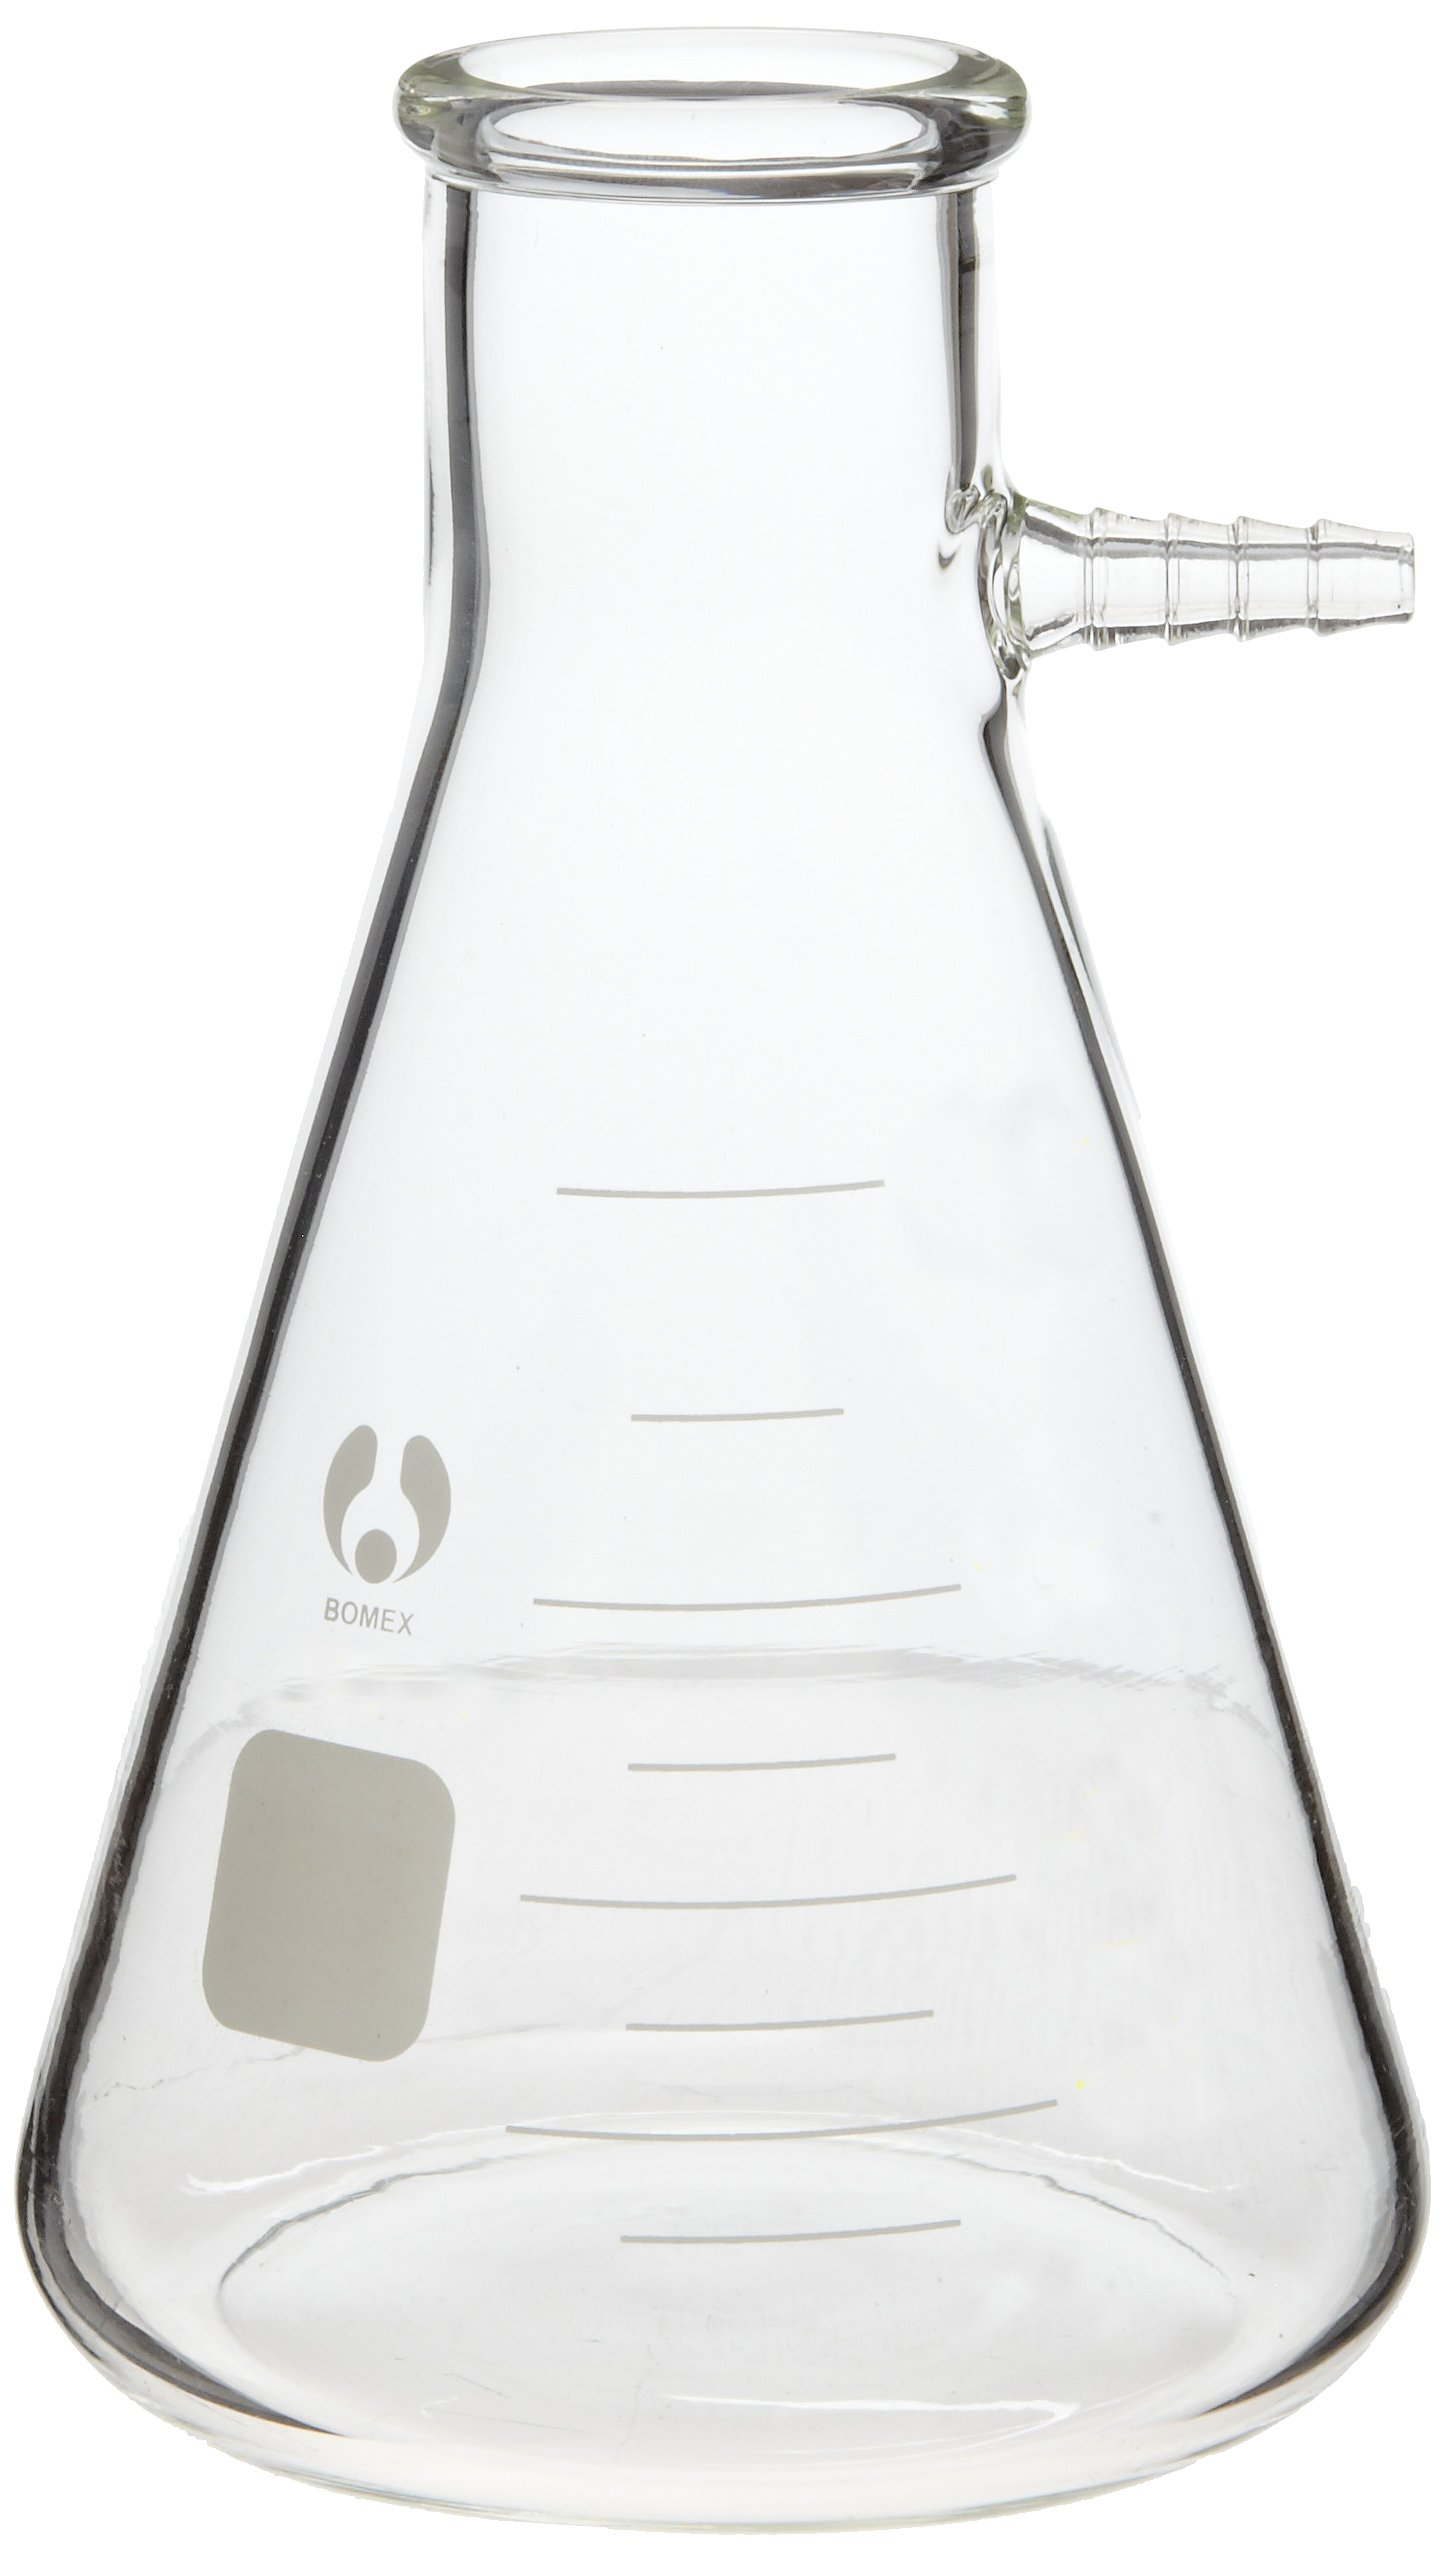 American Educational 7-880500-A Filtering Flask, Bomex Brand Clear Borosilicate Glass, 500mL Capacity by American Educational Products